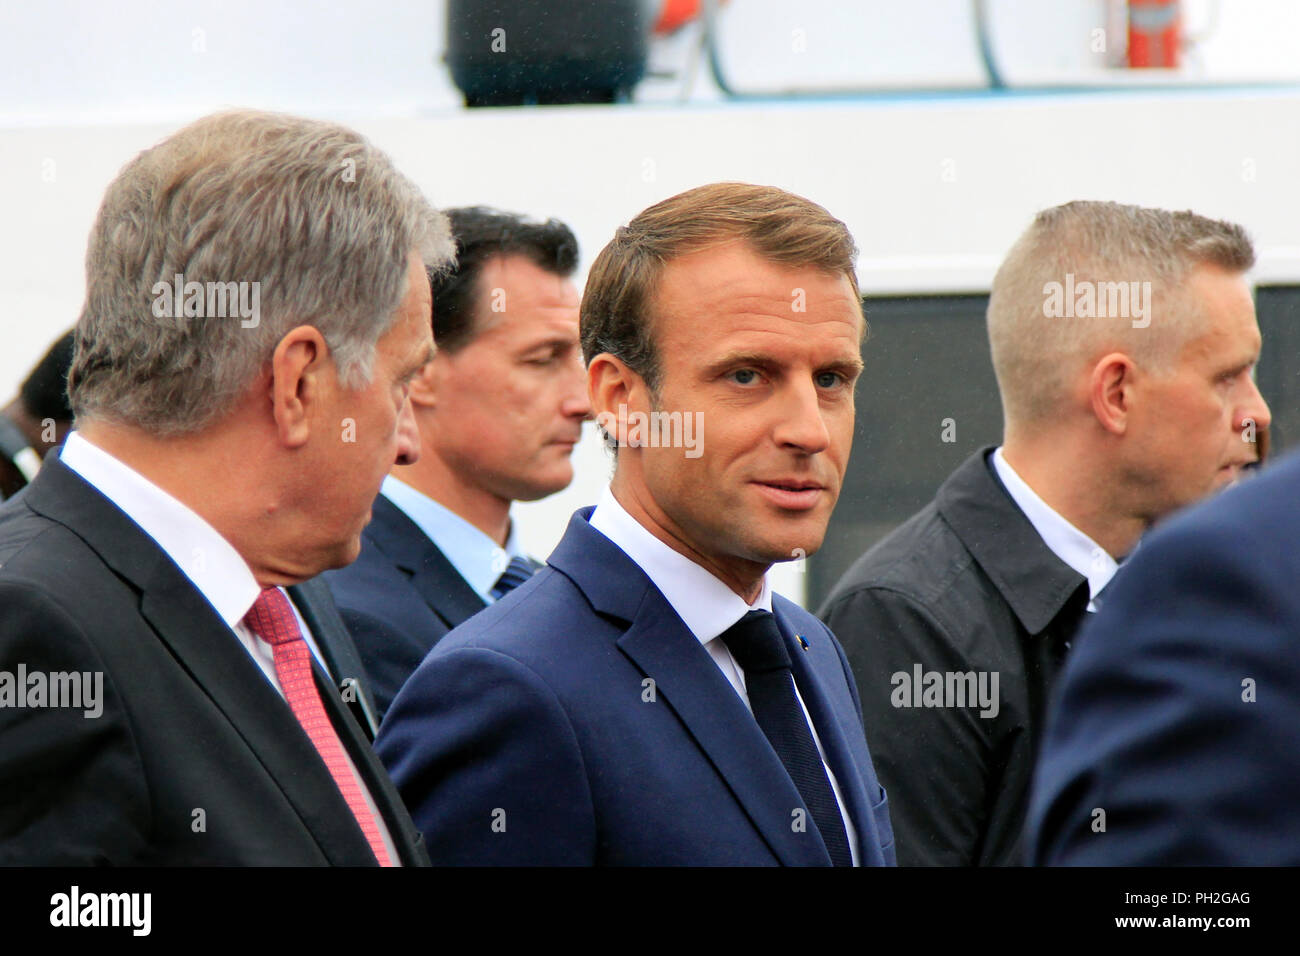 Helsinki, Finland. August 30, 2018. Finnish President Sauli Niinistö (L) and French President Emmanuel Macron (C) take a walk on the Market Square after their joint press conference. Credit: Taina Sohlman/Alamy Live News - Stock Image